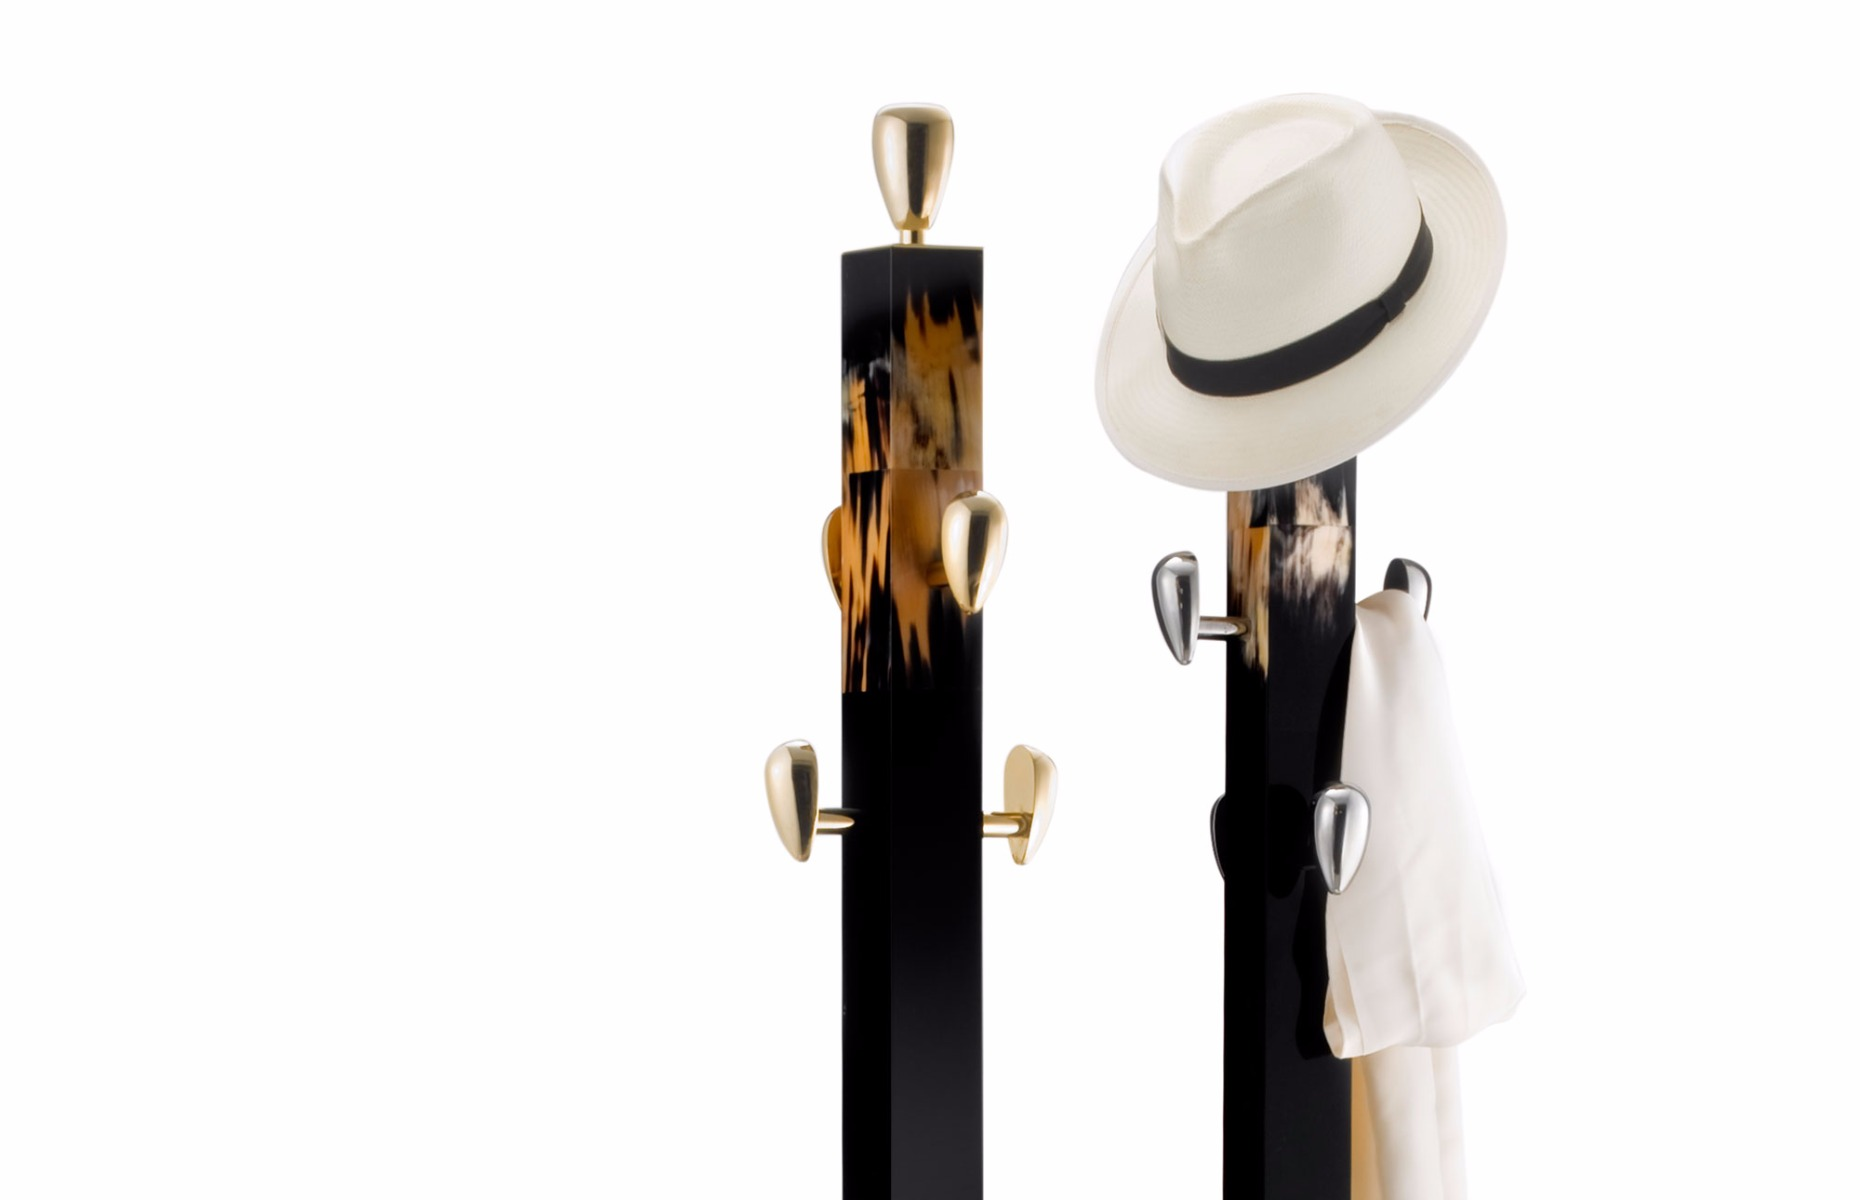 beautiful luxury marble coat racks wither gold and silver bases by Luxuria London